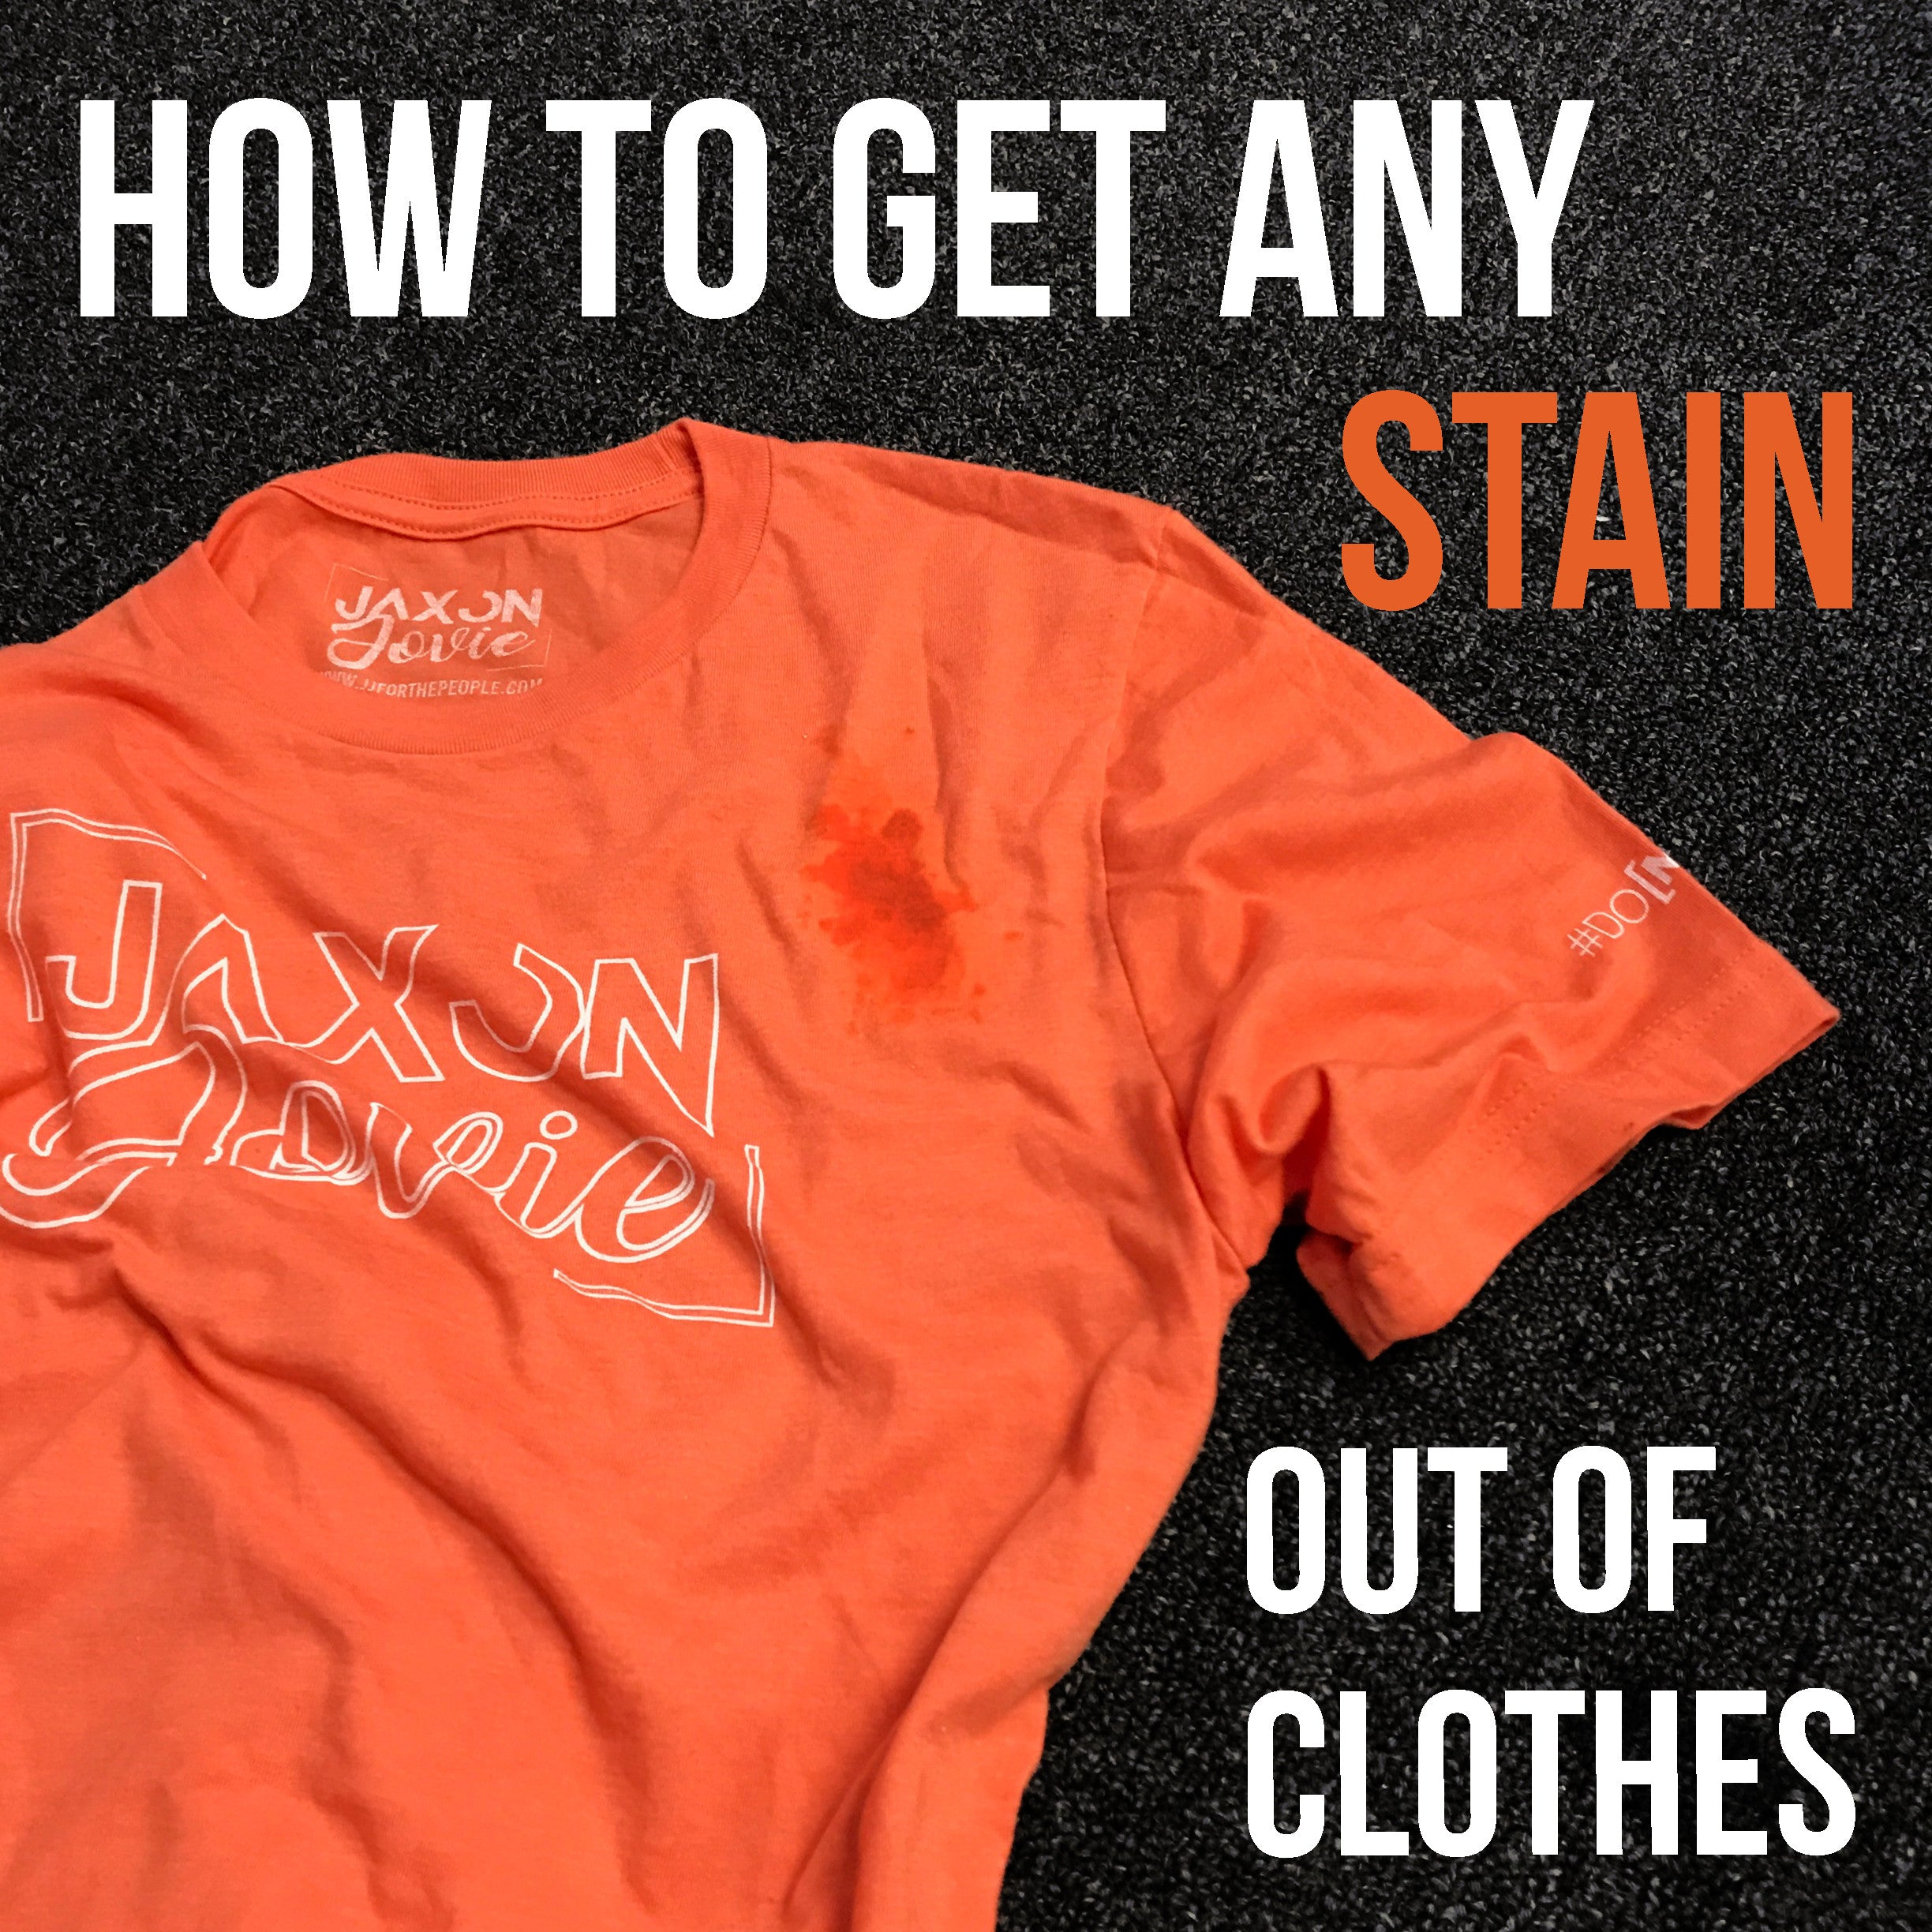 How to Get Any Stain Out of Clothes